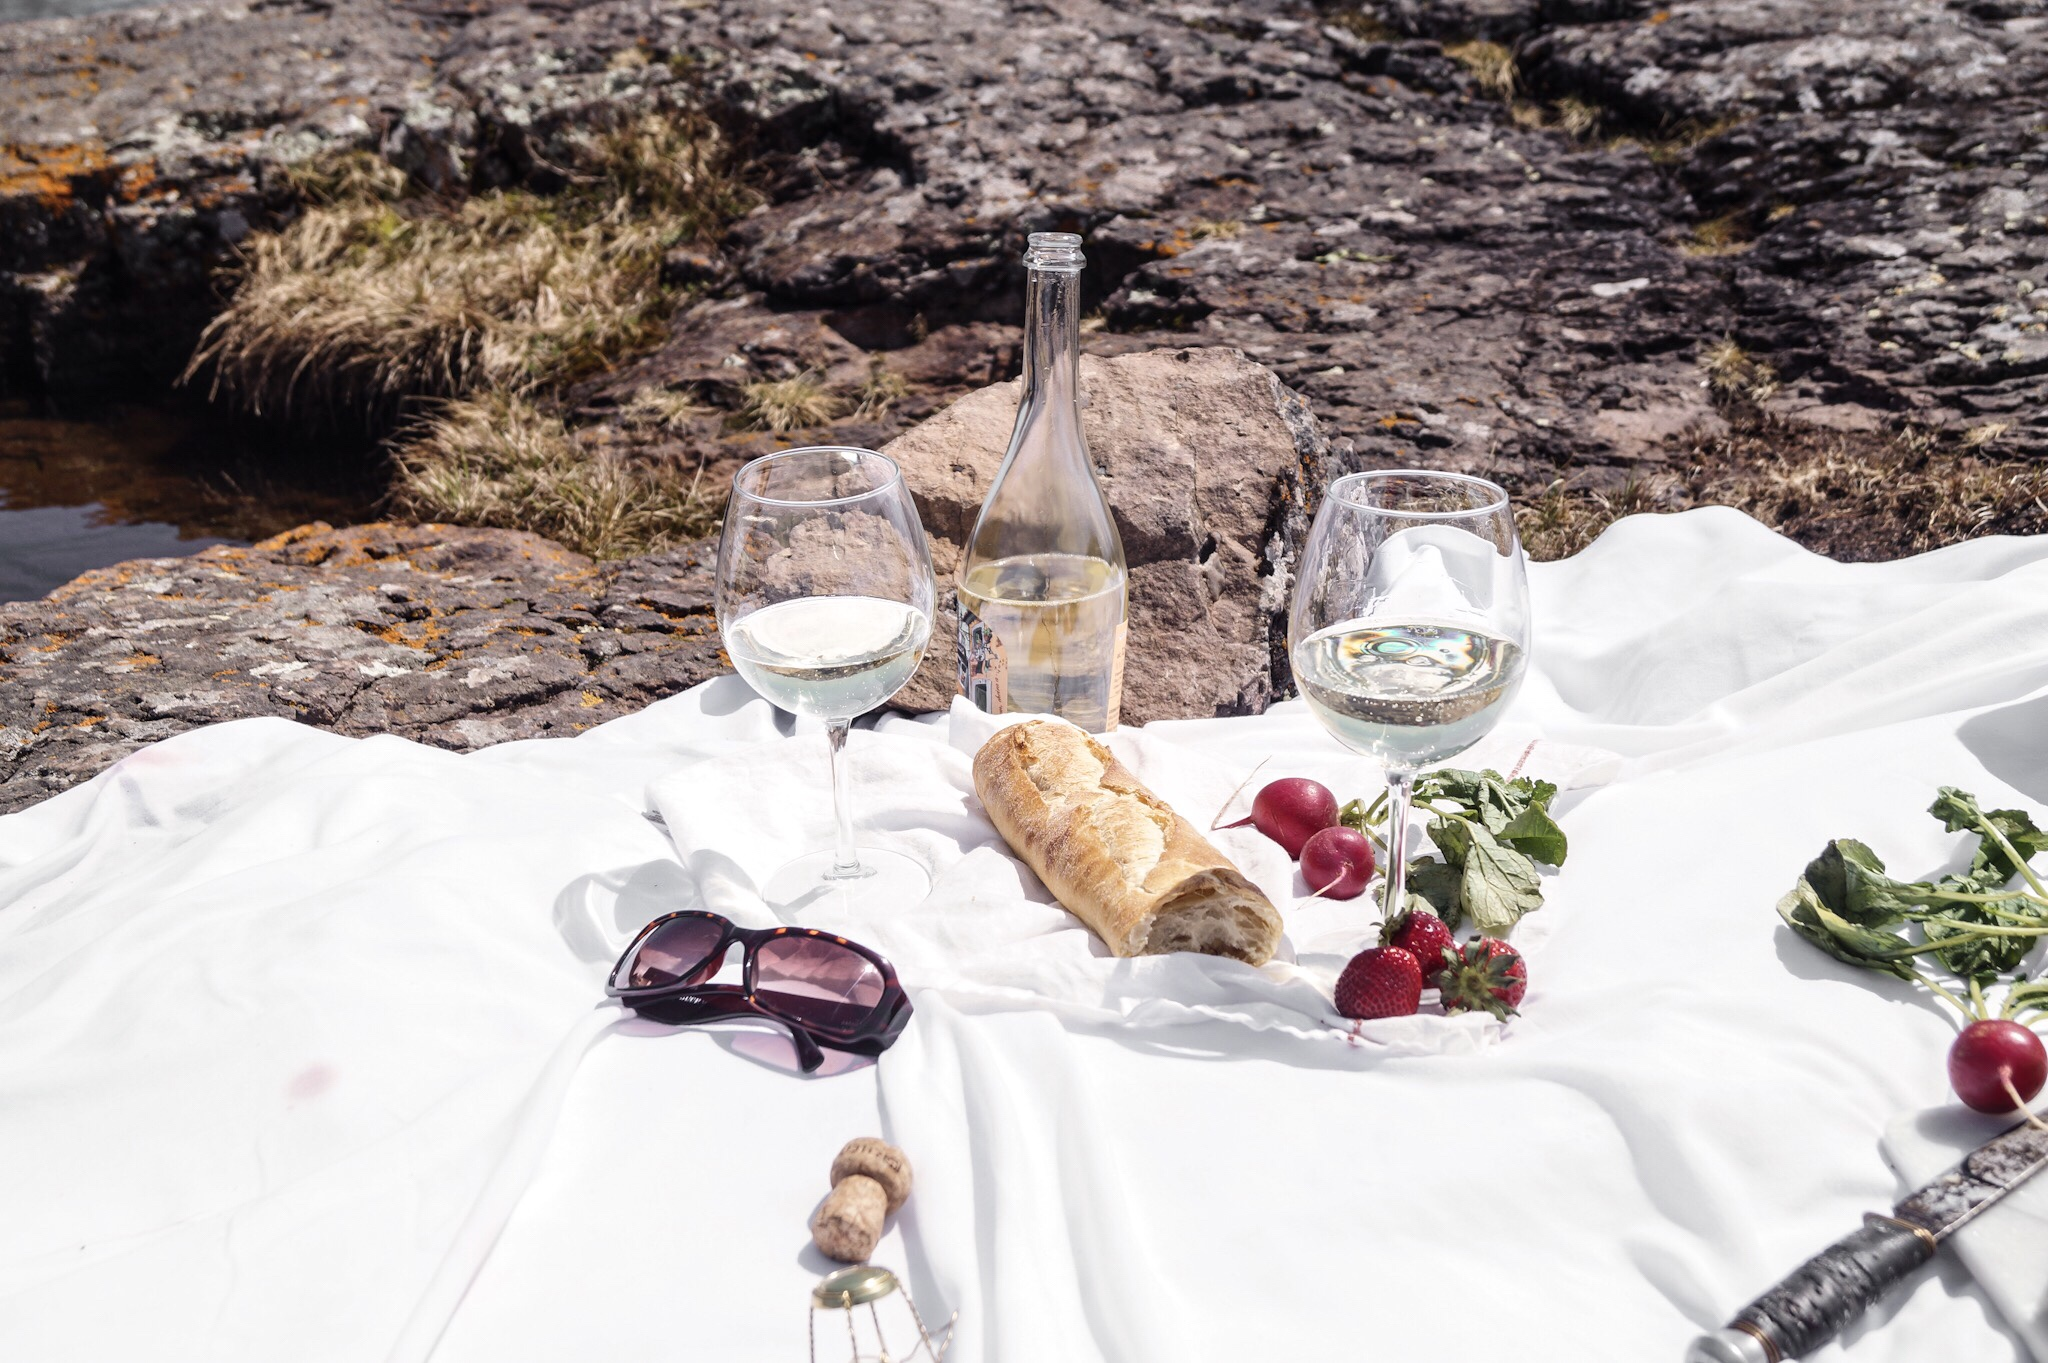 Simple ingredients for a romantic picnic